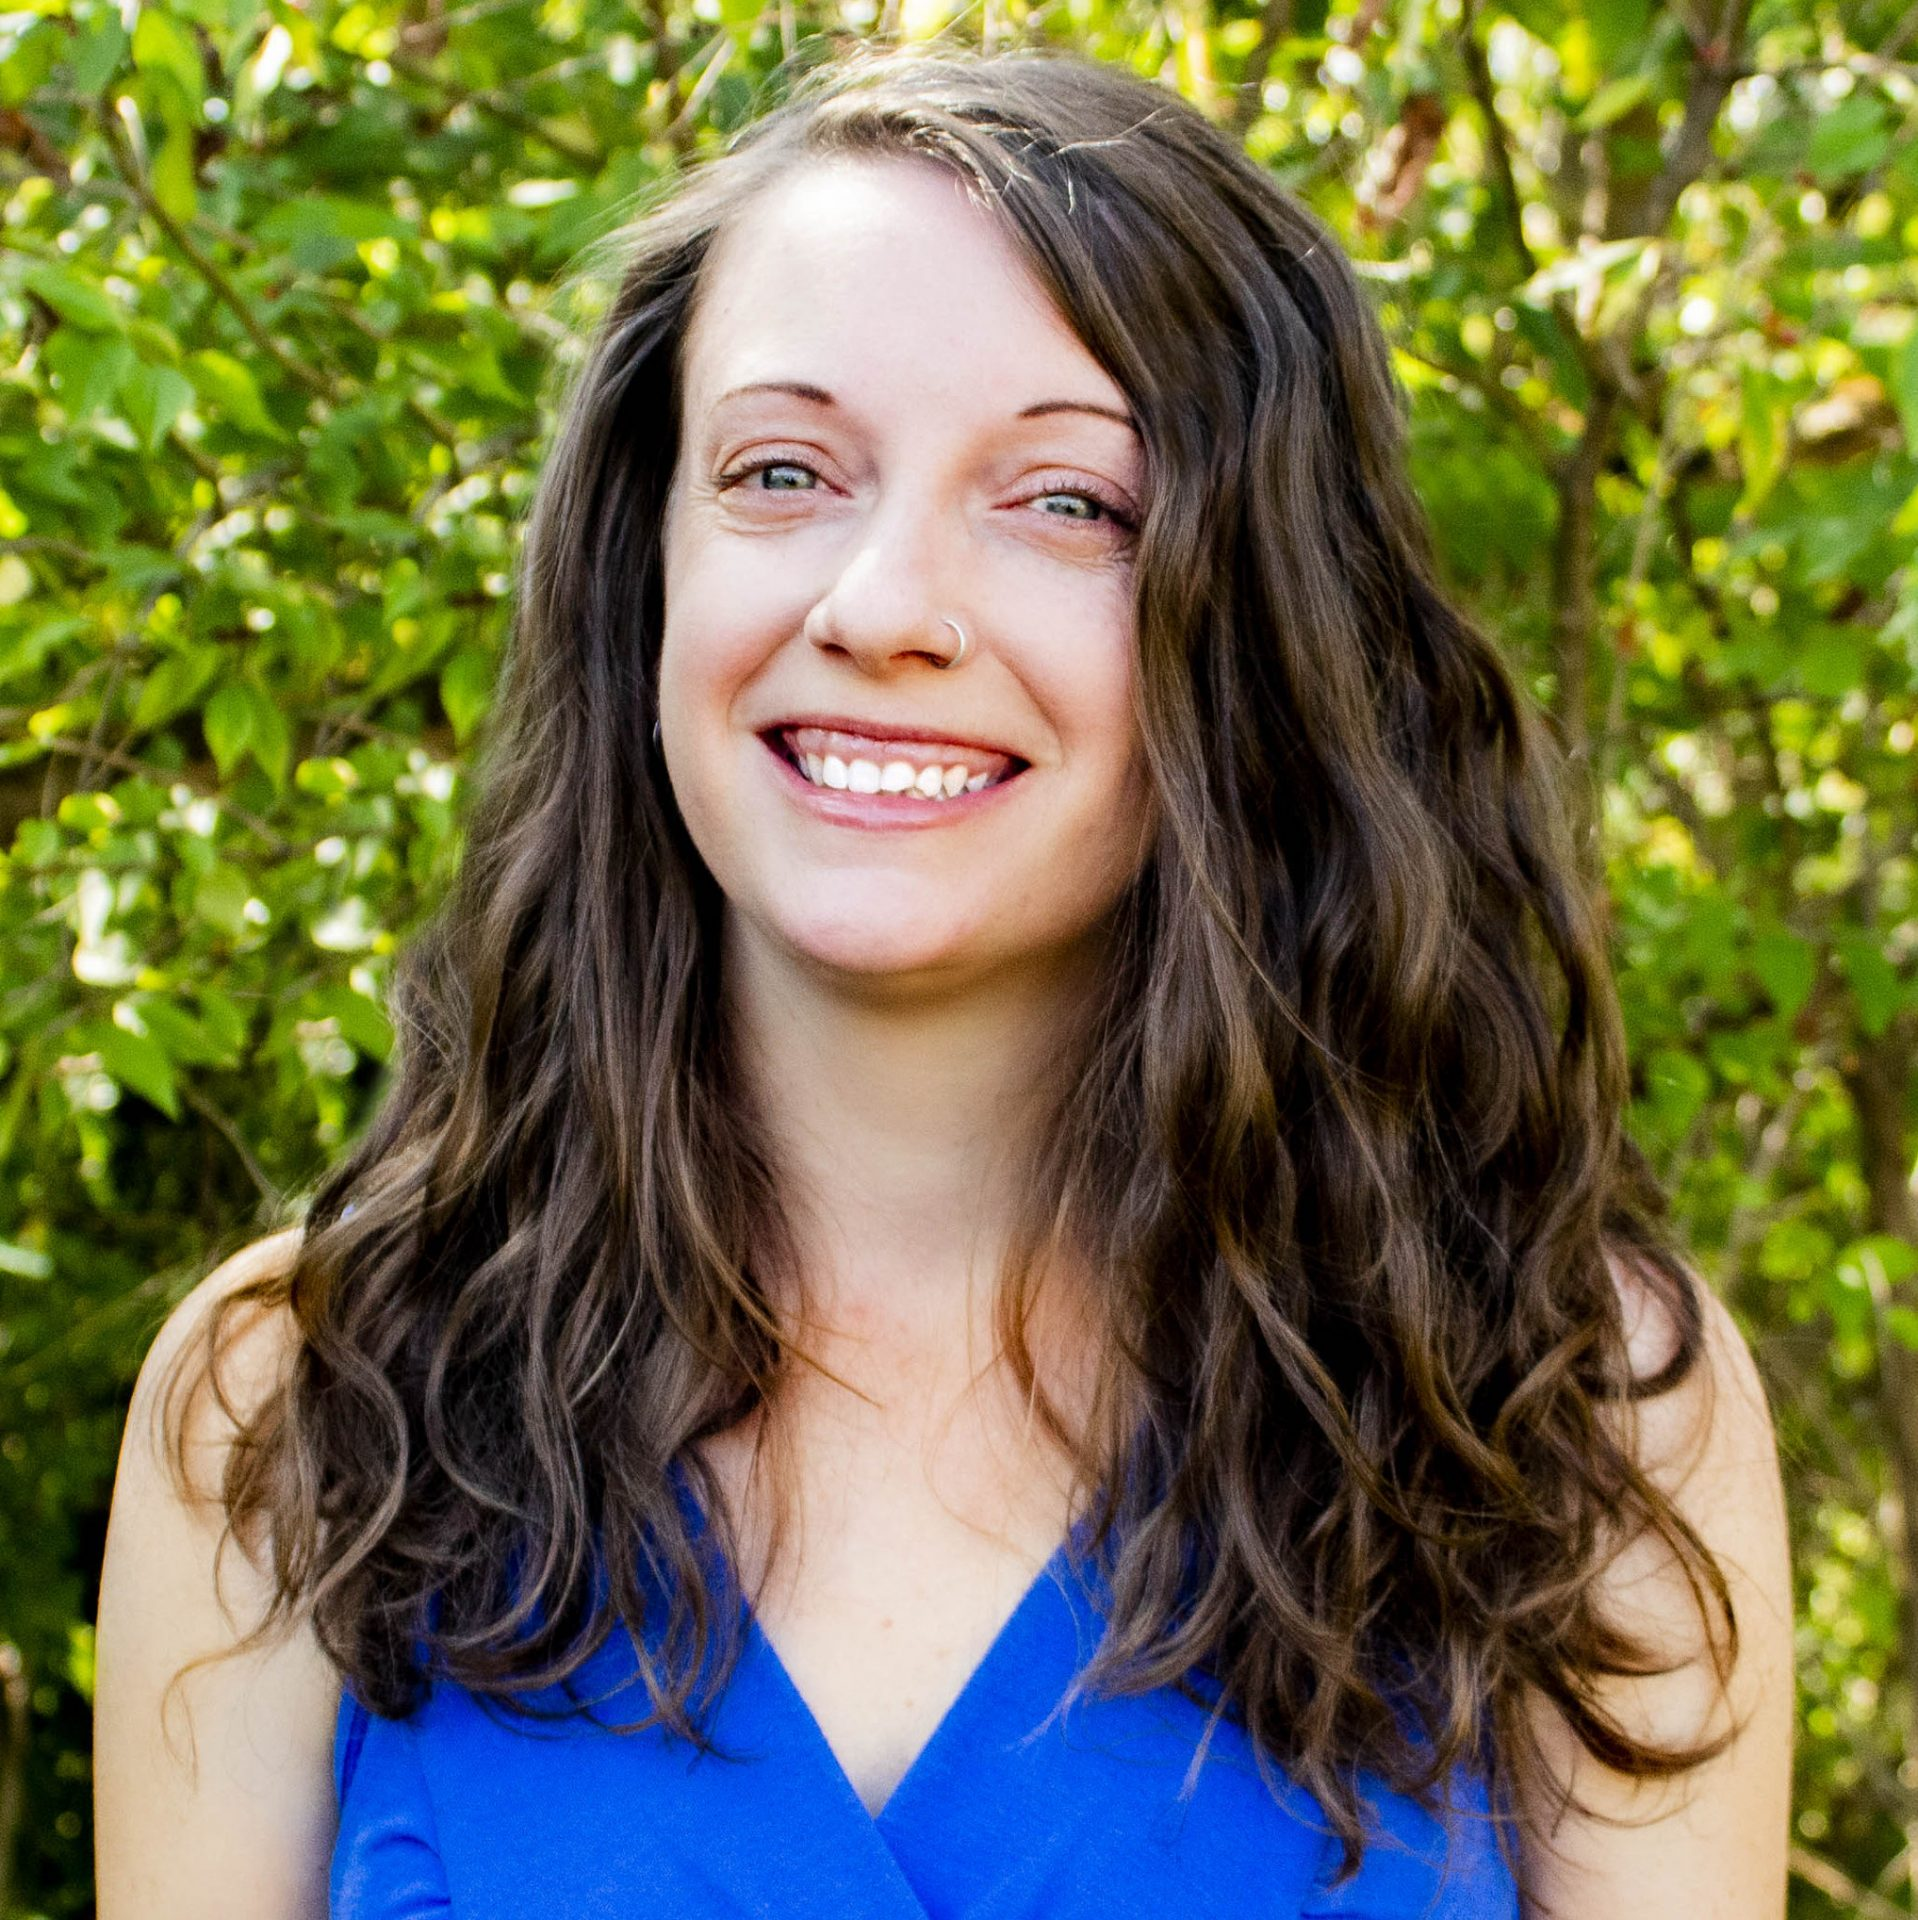 Meggan Loveland, Programs & Communications Coordinator